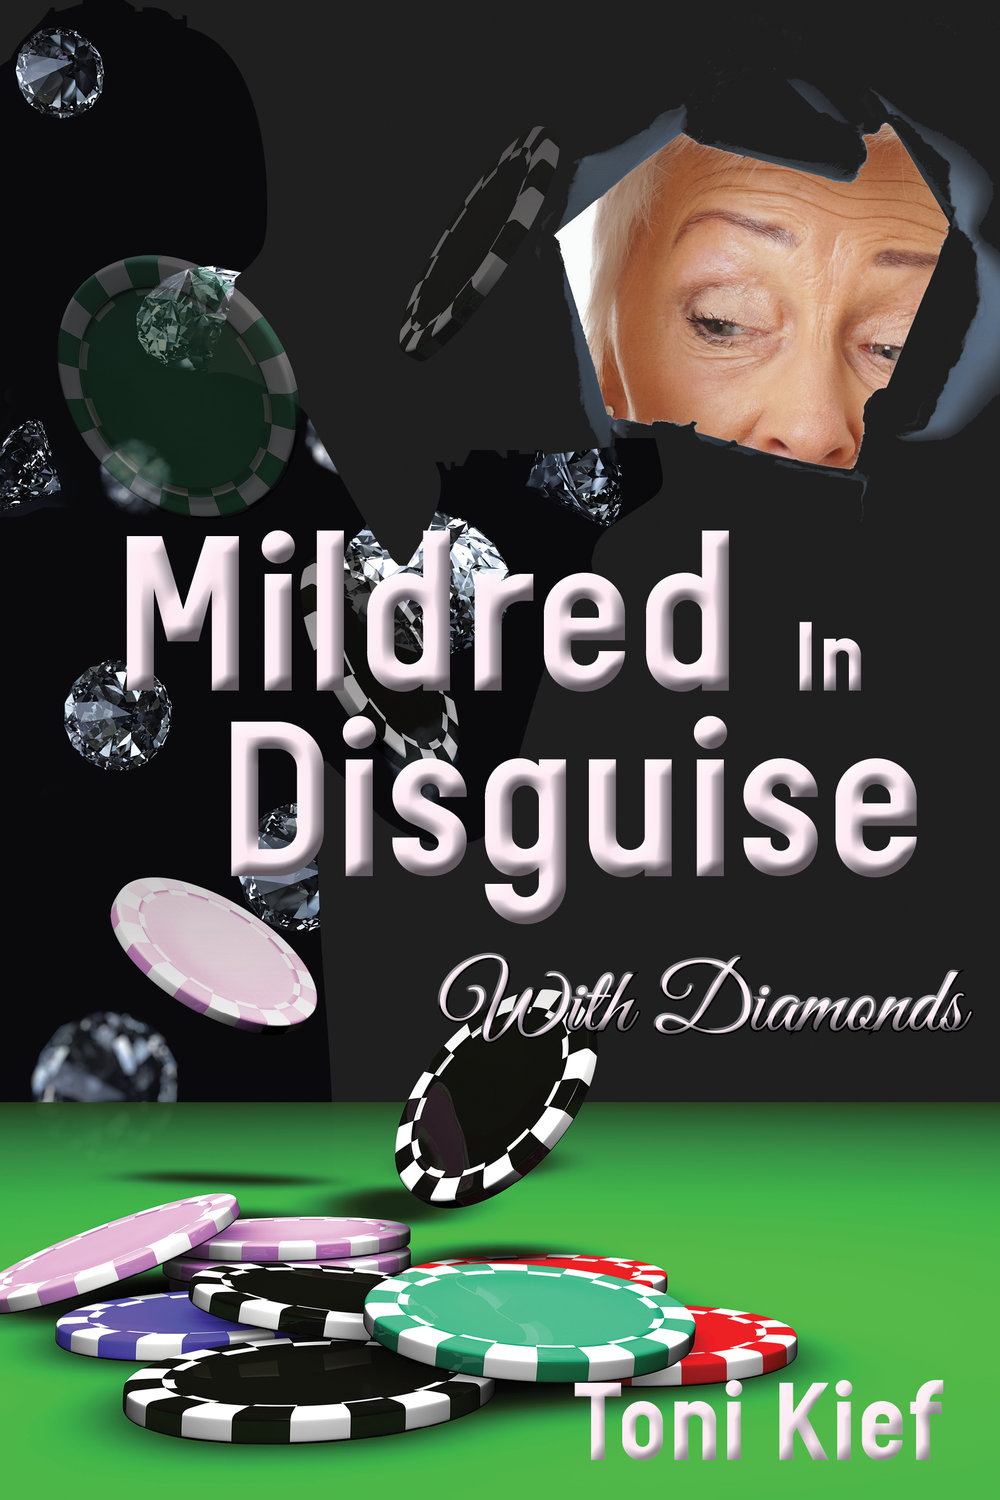 Mildred in Disguise with Diamonds Available in paperback and on Kindle. Cover artwork and interior layout design provided by Cover&Layout